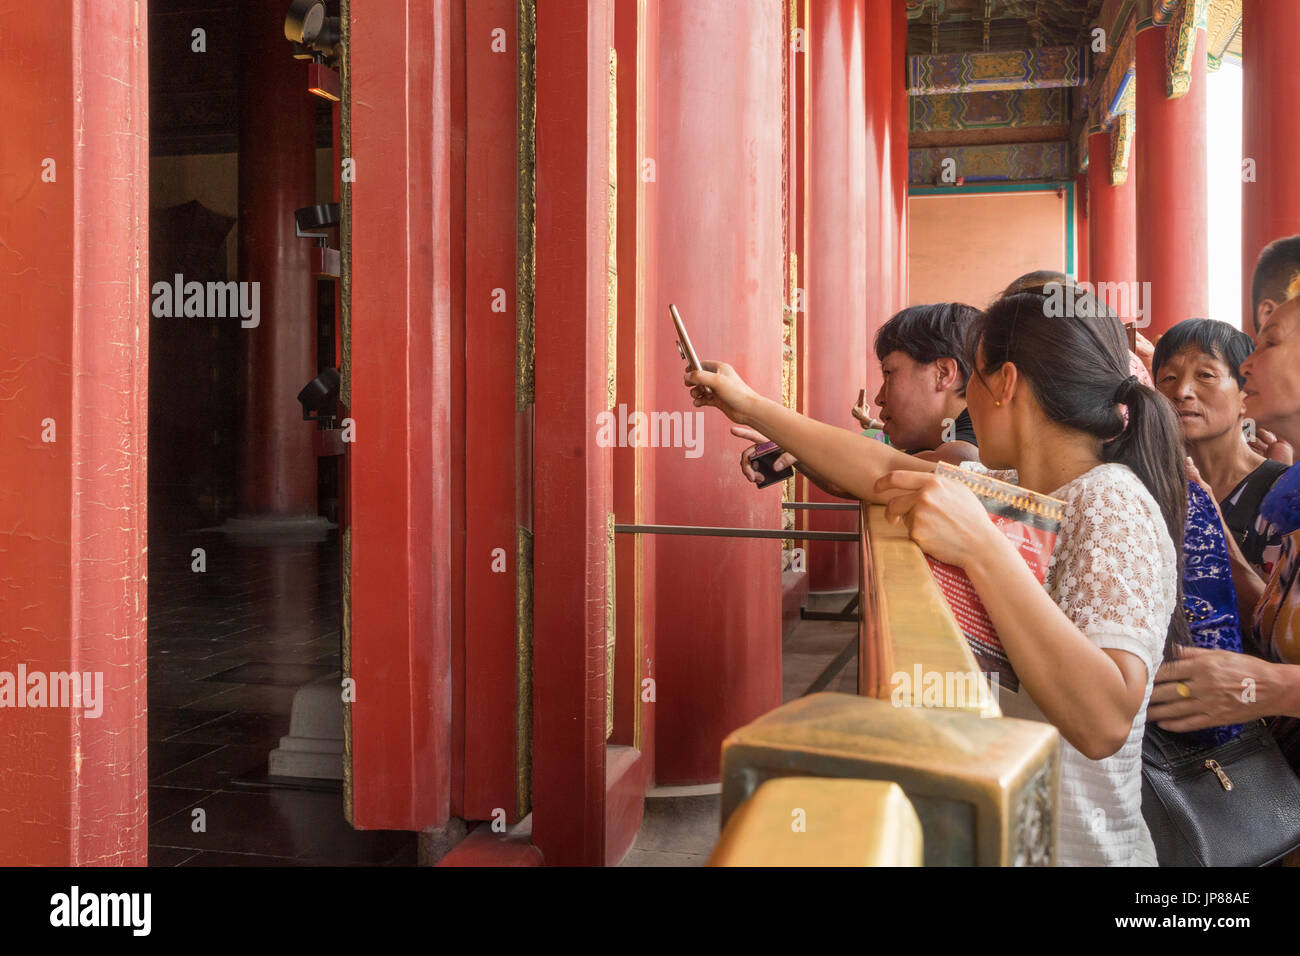 Chinese tourists clamboring to get a glimpse and take a mobile phone photo of the Hall of Supreme Harmony in the Forbidden City - Stock Image